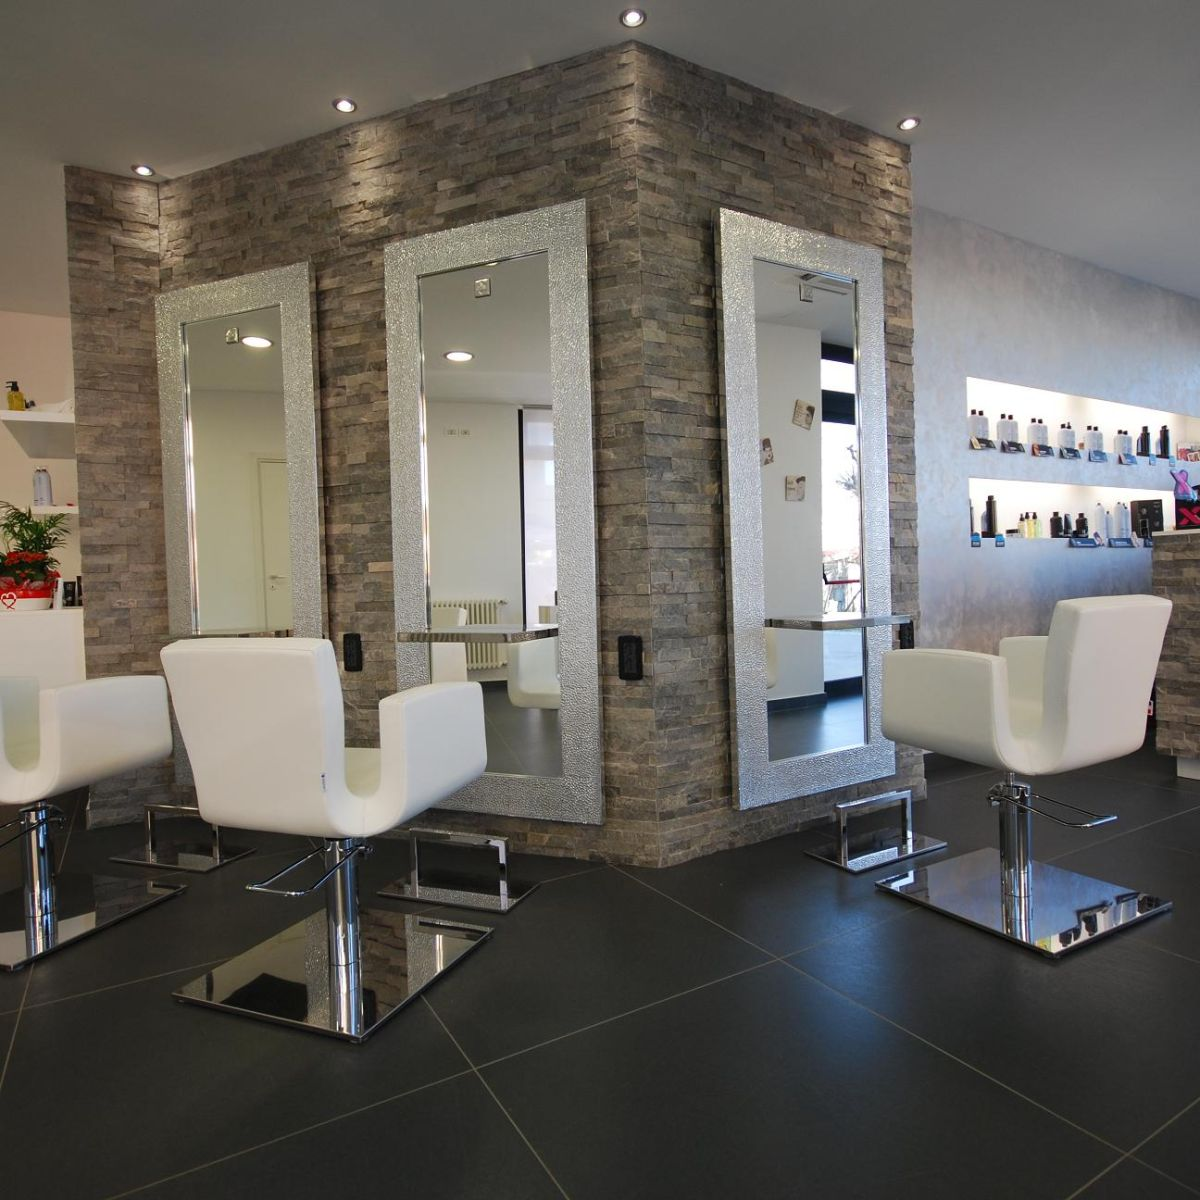 nelson mobilier hair salon furniture made in france On mobilier design